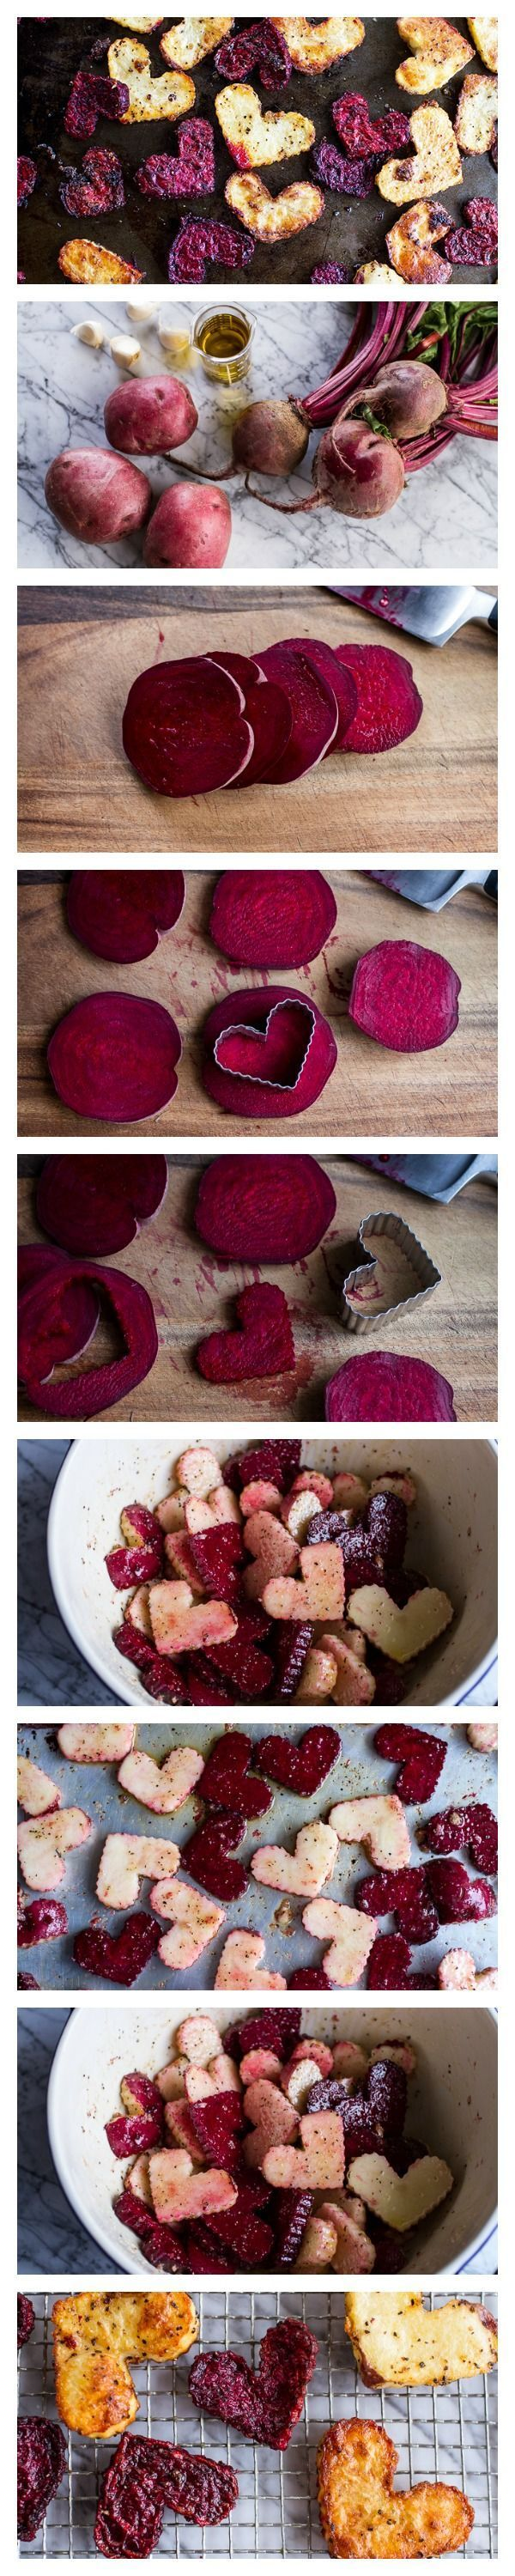 Serve these cute beet and potato hearts alongside your Valentine's Day meal or just for fun to get your kids to eat more vegetables! All clean eating ingredients are used for this healthy side dish recipe. Pin now to make these potatoes and beets later!